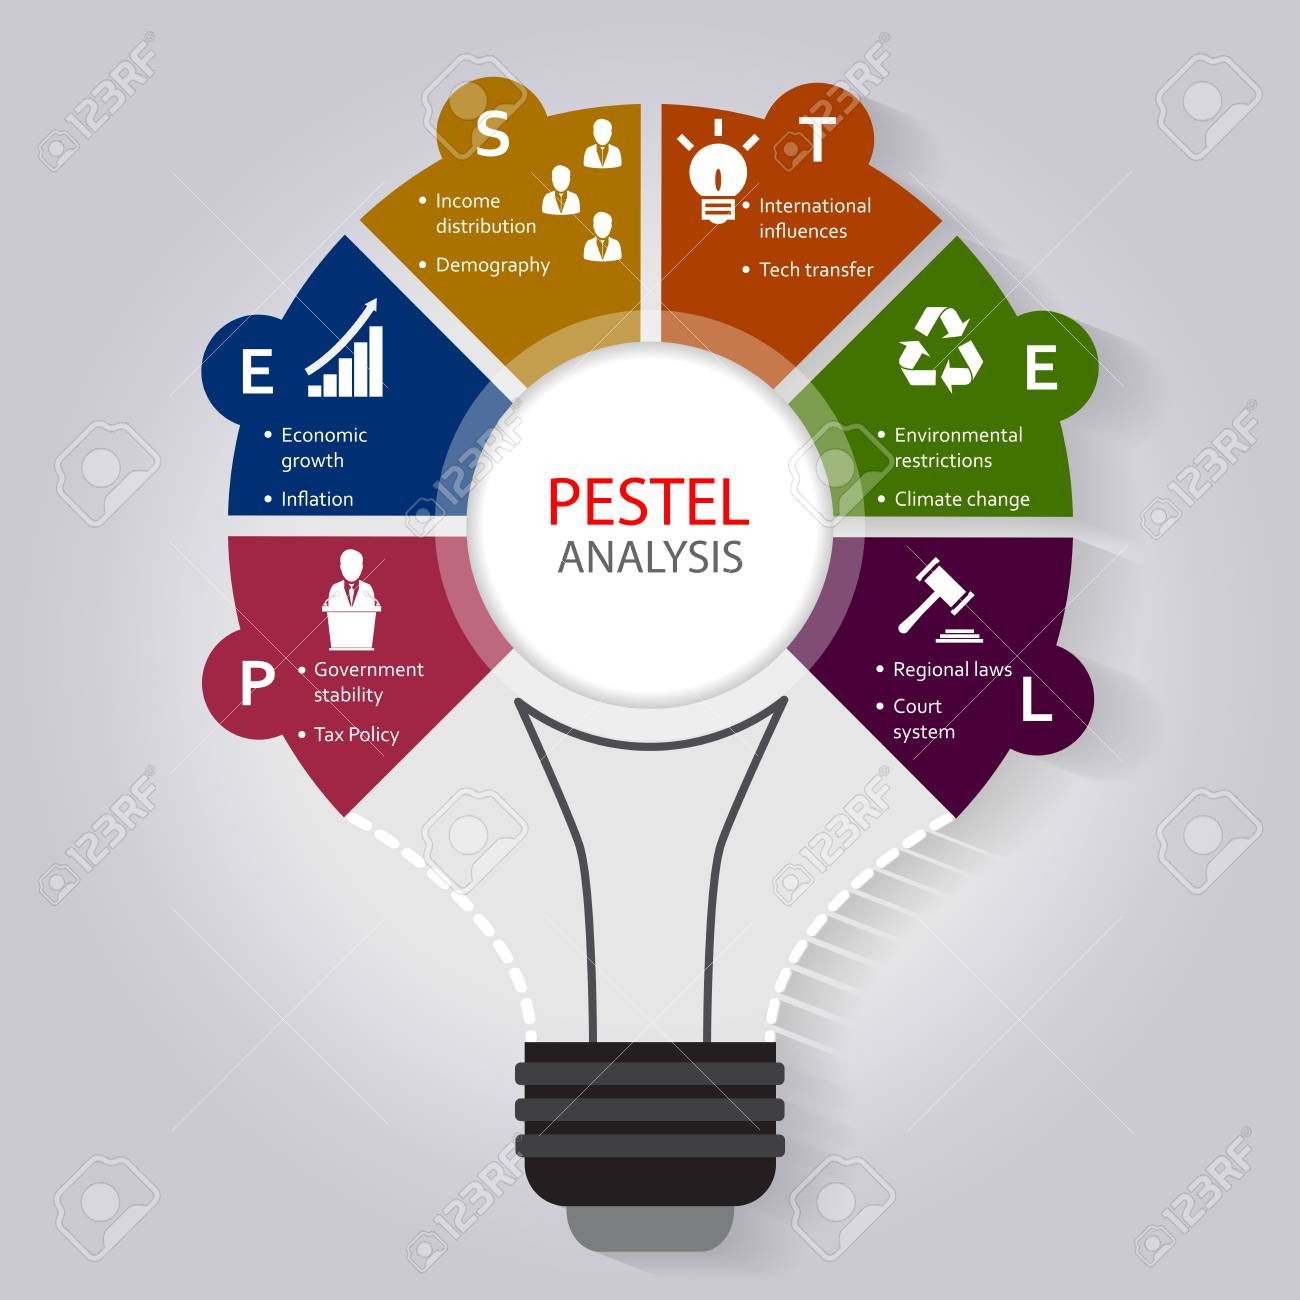 PESTEL Analysis Infographic Template With Political, Economic ...